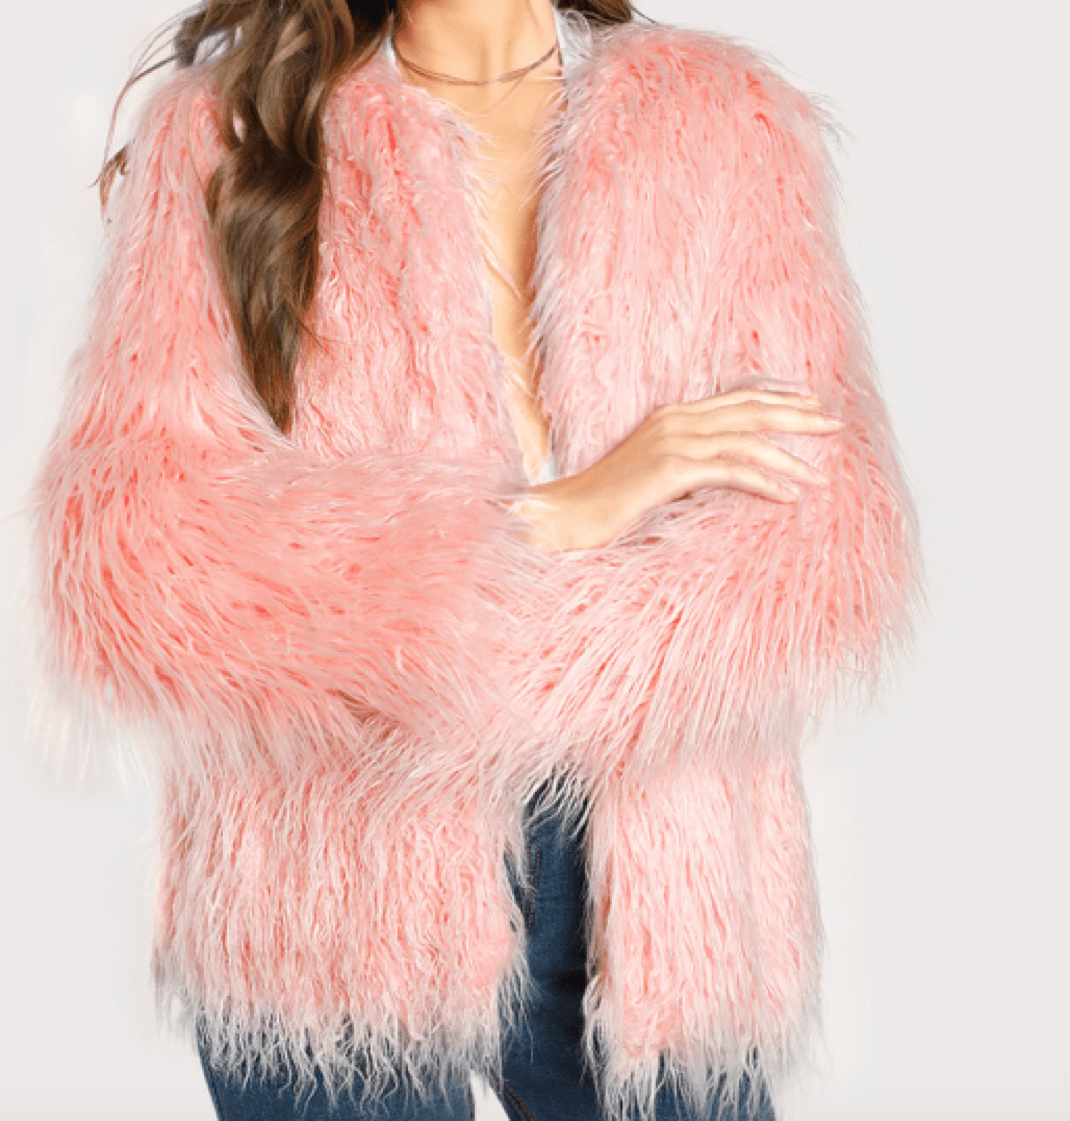 Heavily textured faux fur pink coat, hip-length